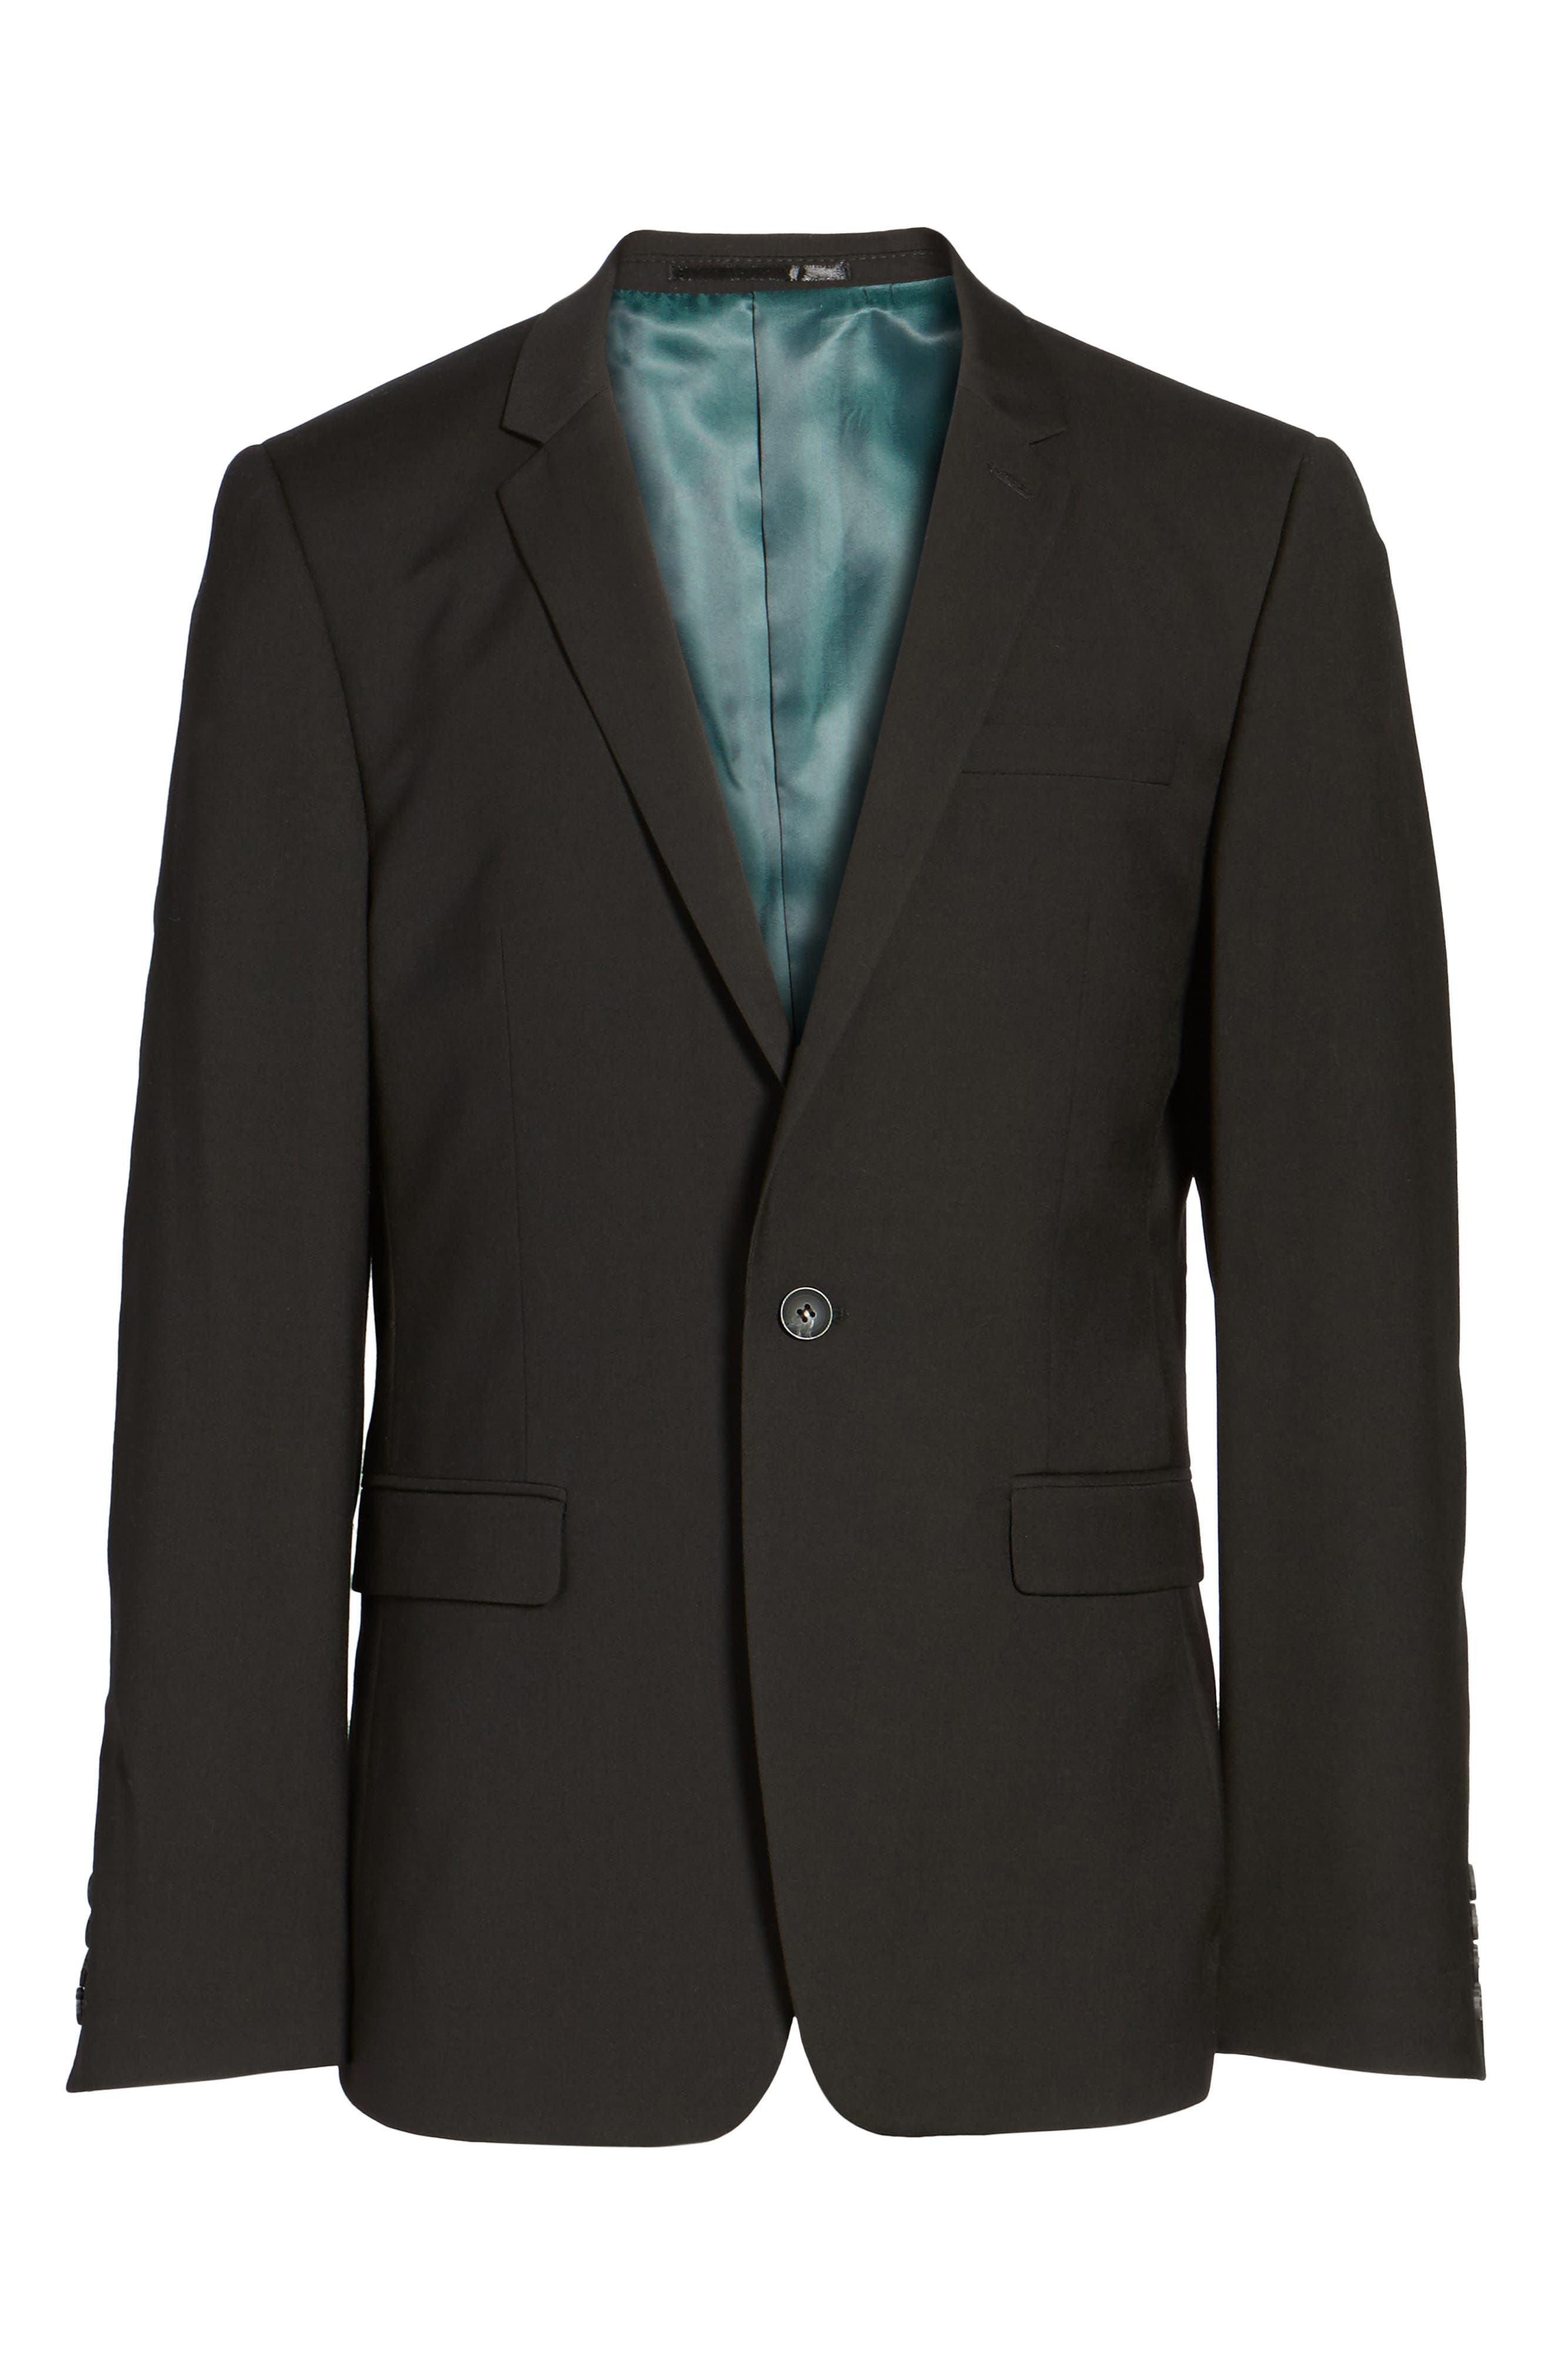 Ultra Skinny Black Suit Jacket,                             Alternate thumbnail 6, color,                             BLACK